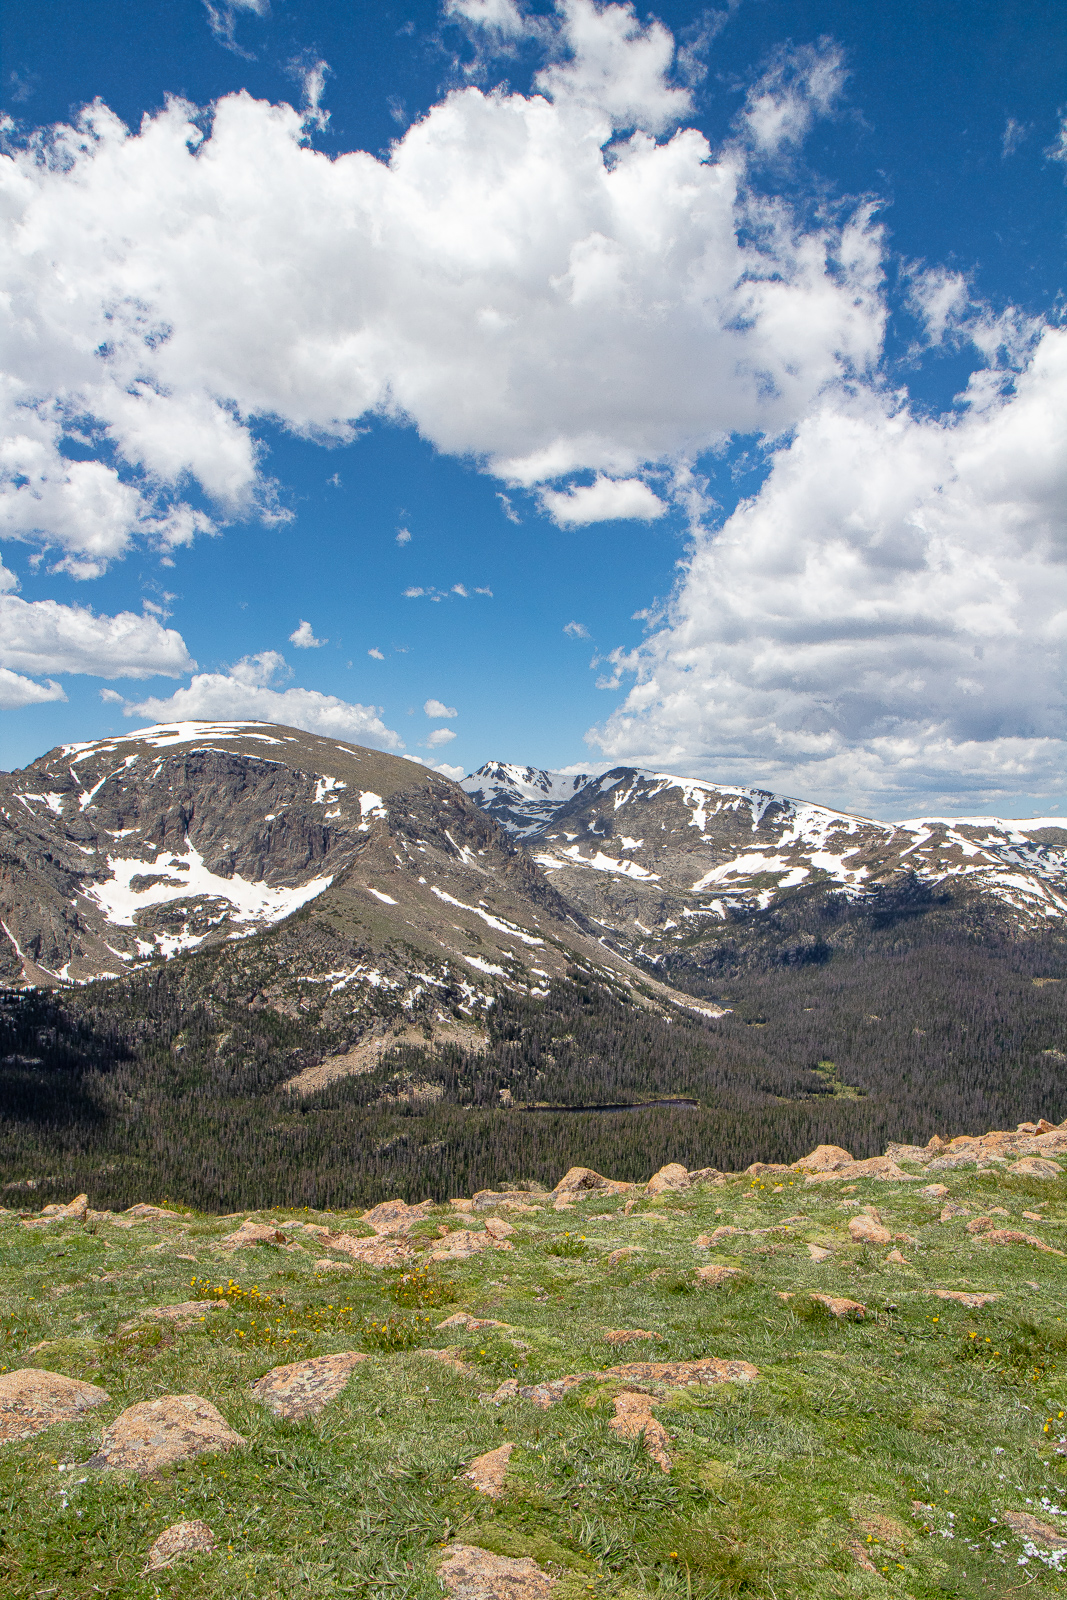 Forest Canyon Overlook on Trail Ridge Road in Rocky Mountain National Park